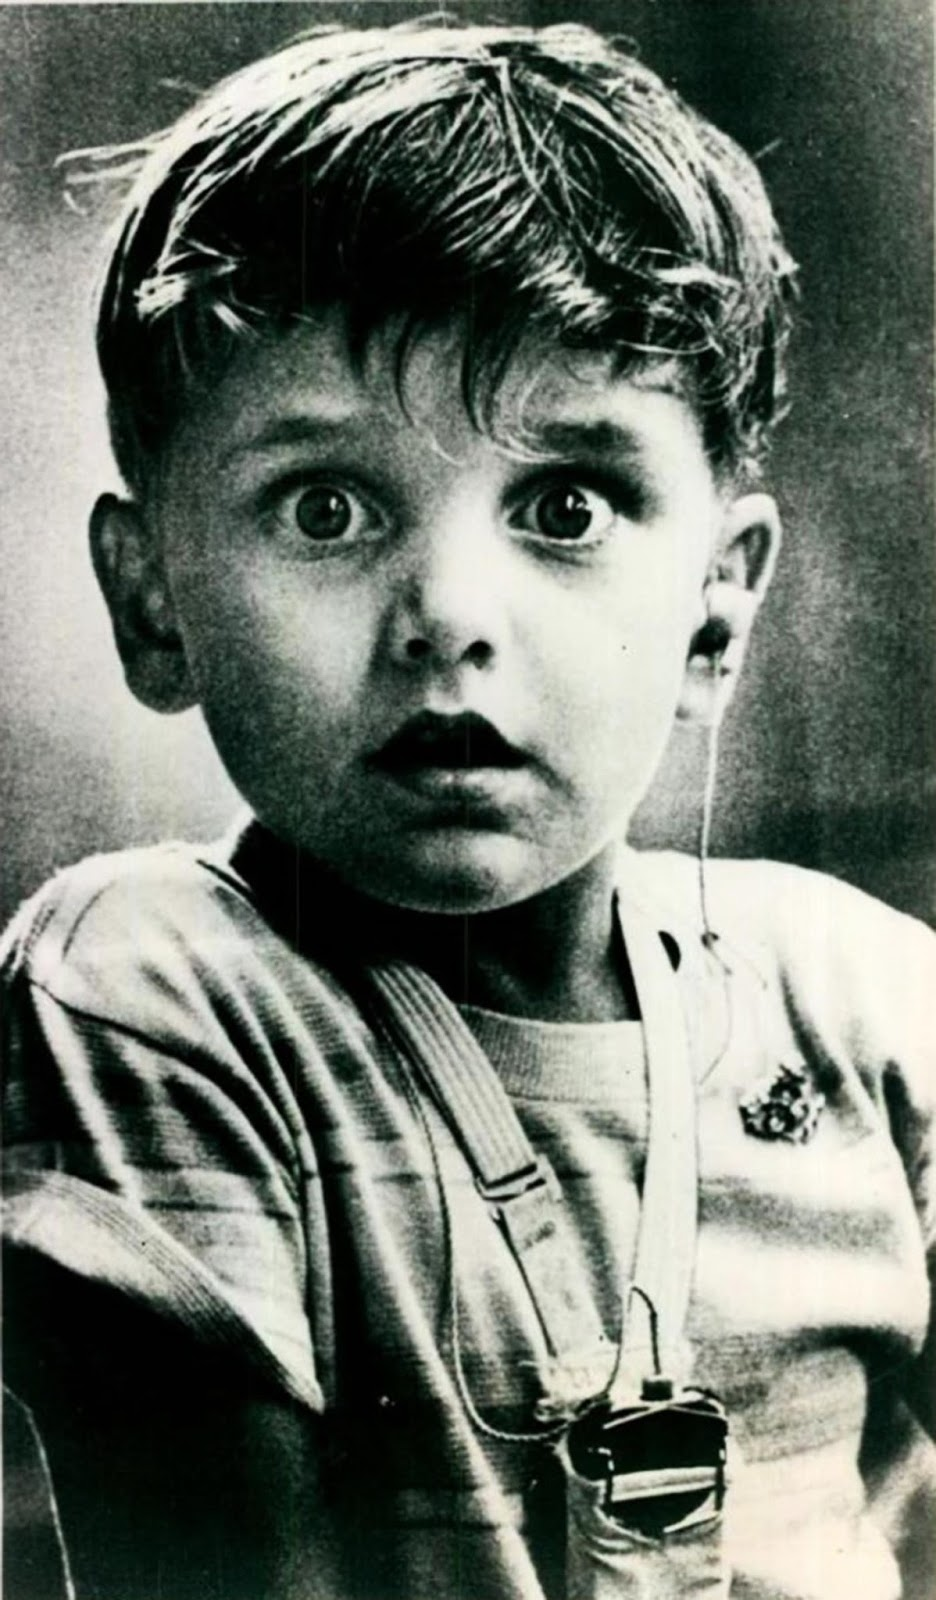 The exact moment when Harold Whittles, born deaf, hears for the first time after placement of earpiece.